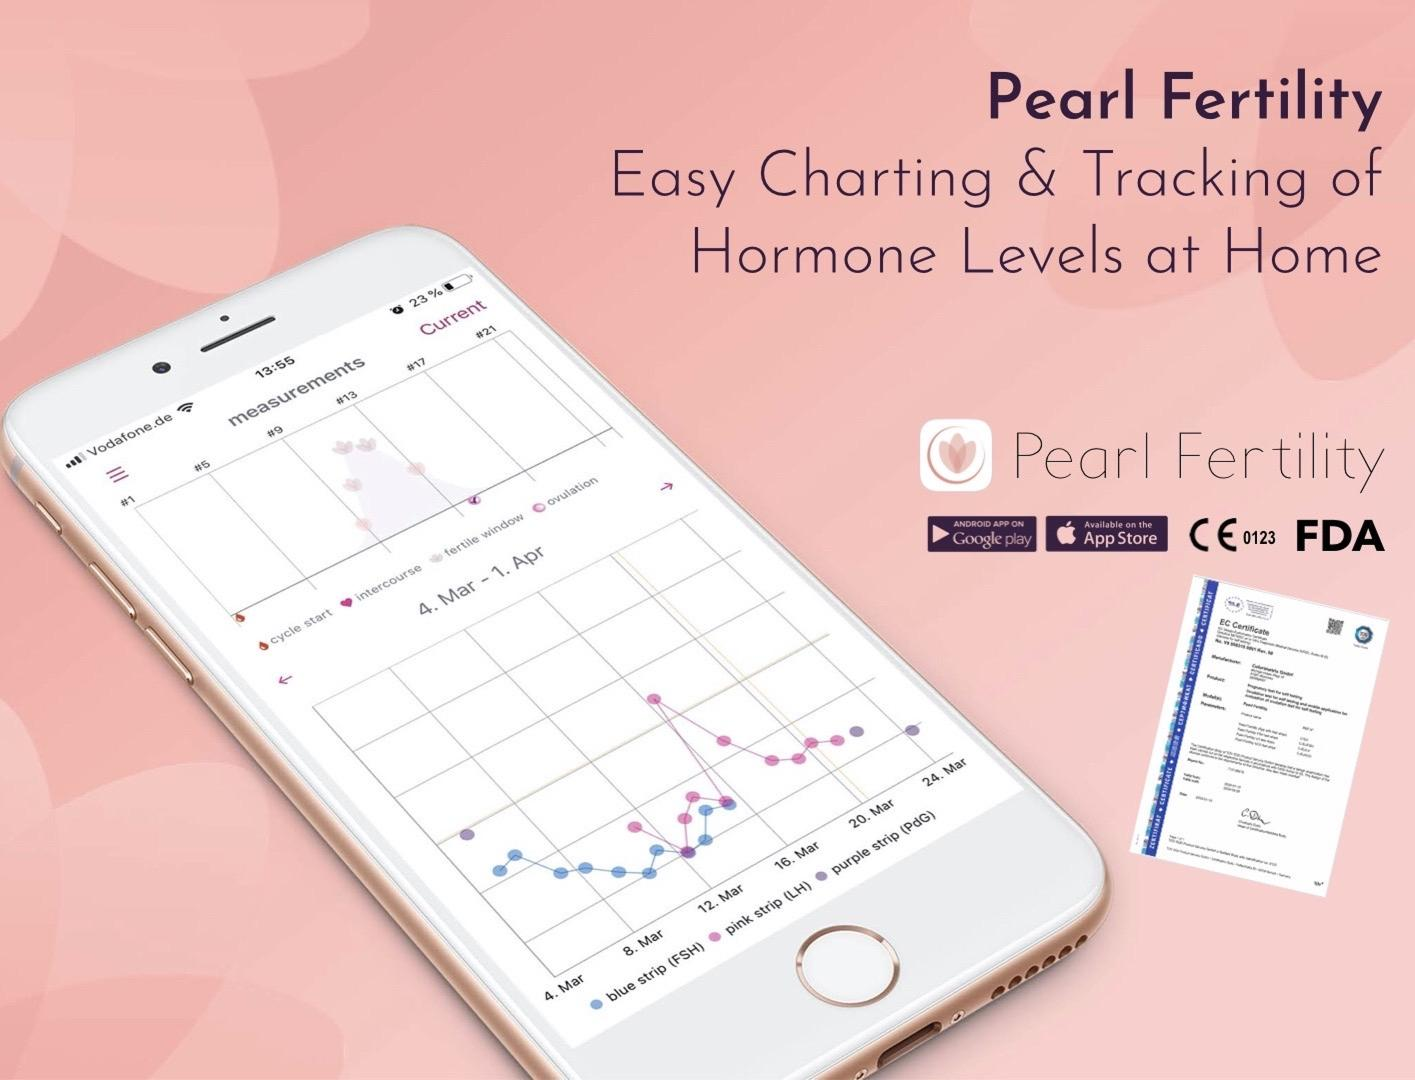 Pearl Fertility - CE certified, FDA listed.